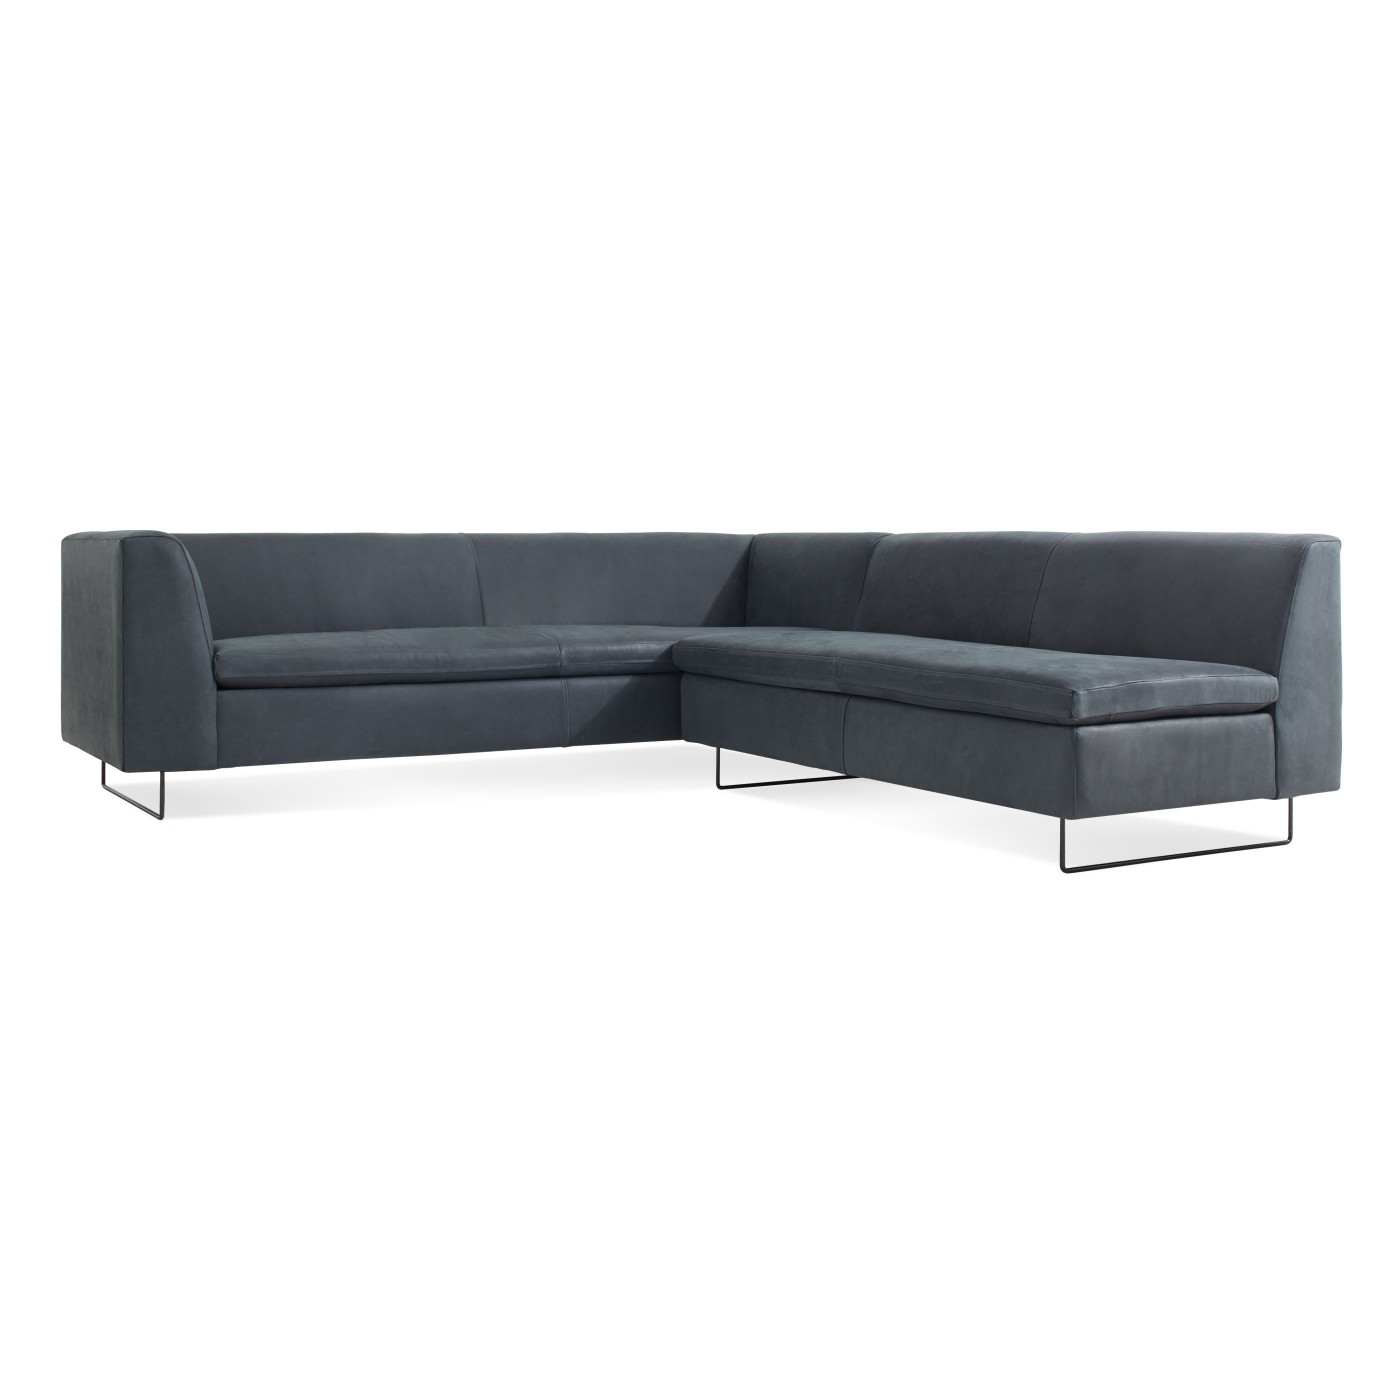 Bonnie and Clyde Leather Sectional Sofa by Blu Dot — Hub Modern Home +  GiftPost — Hub Modern Home + Gift